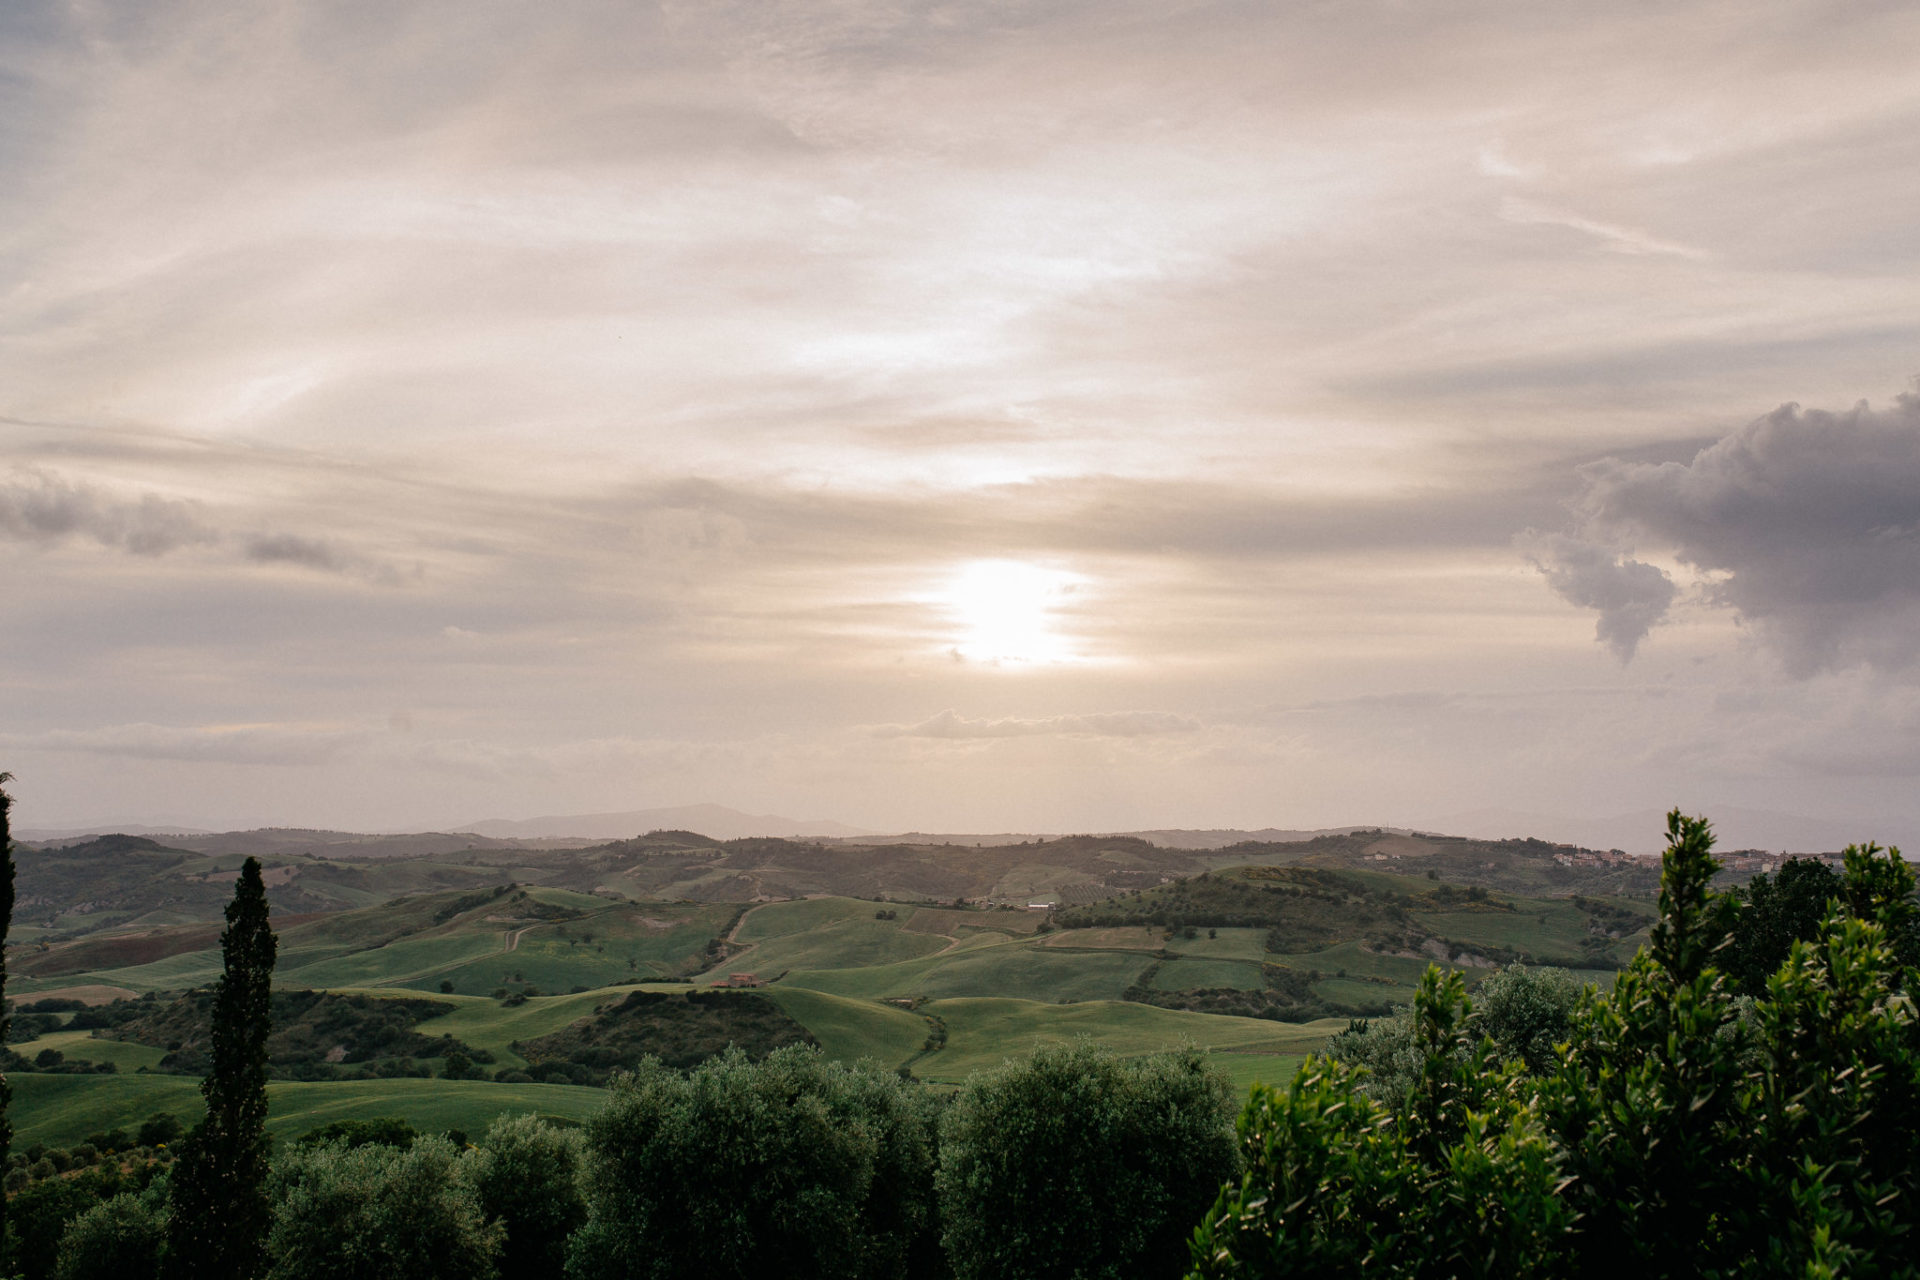 wedding photographer tuscany-italy road trip with dog-boutique hotel-exclusive romantic gateway-grosseto region-dimora santa margherita